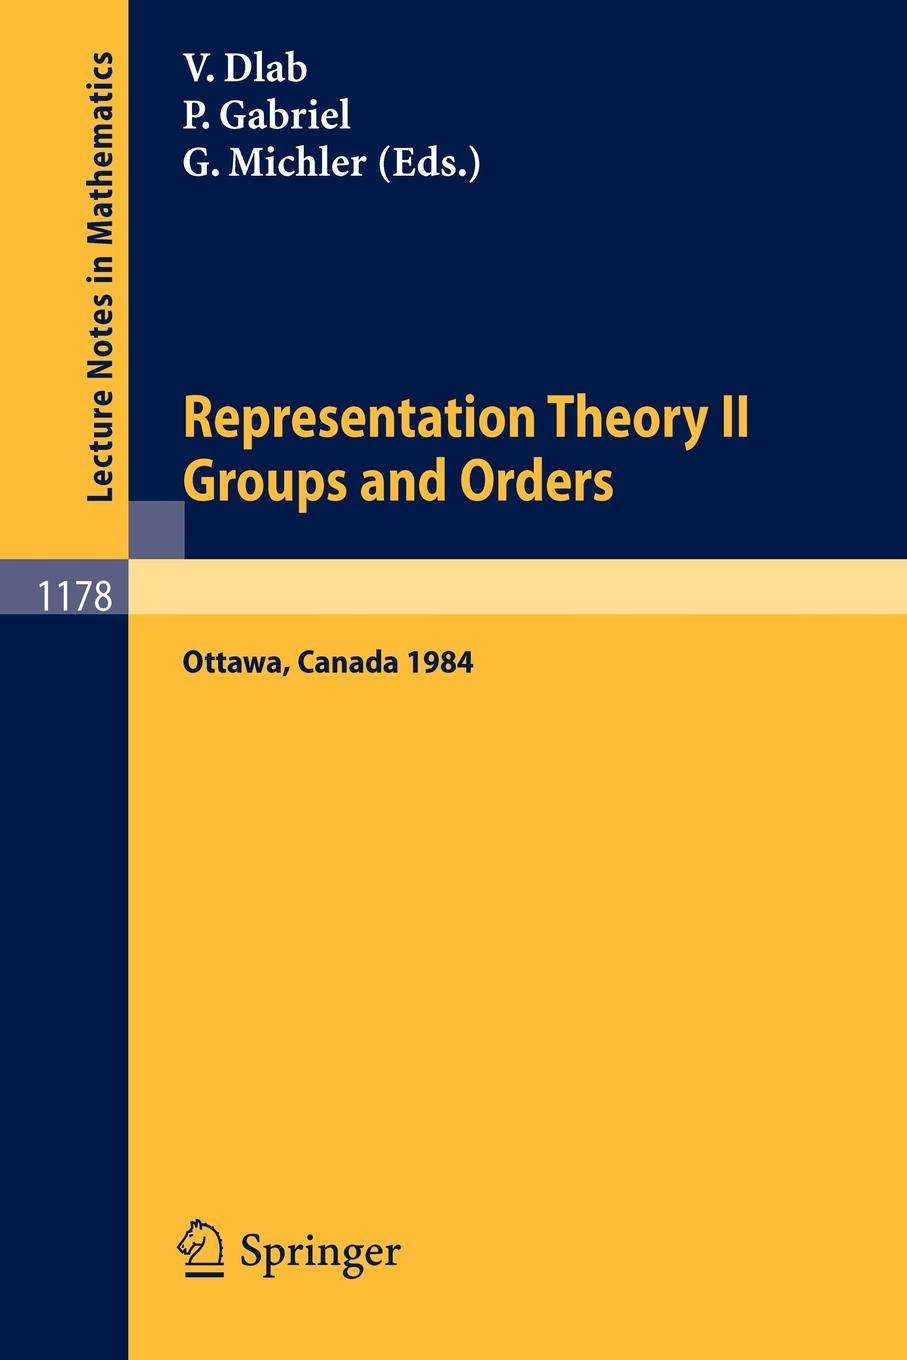 Representation Theory II. Proceedings of the Fourth International Conference on Representations of Algebras, held in Ottawa, Canada, August 16-25, 1984. Groups and Orders рычкова е сост история кружева история страны сборник научных статей конференции history of lace history of the country international scientific and practical conference proceedings